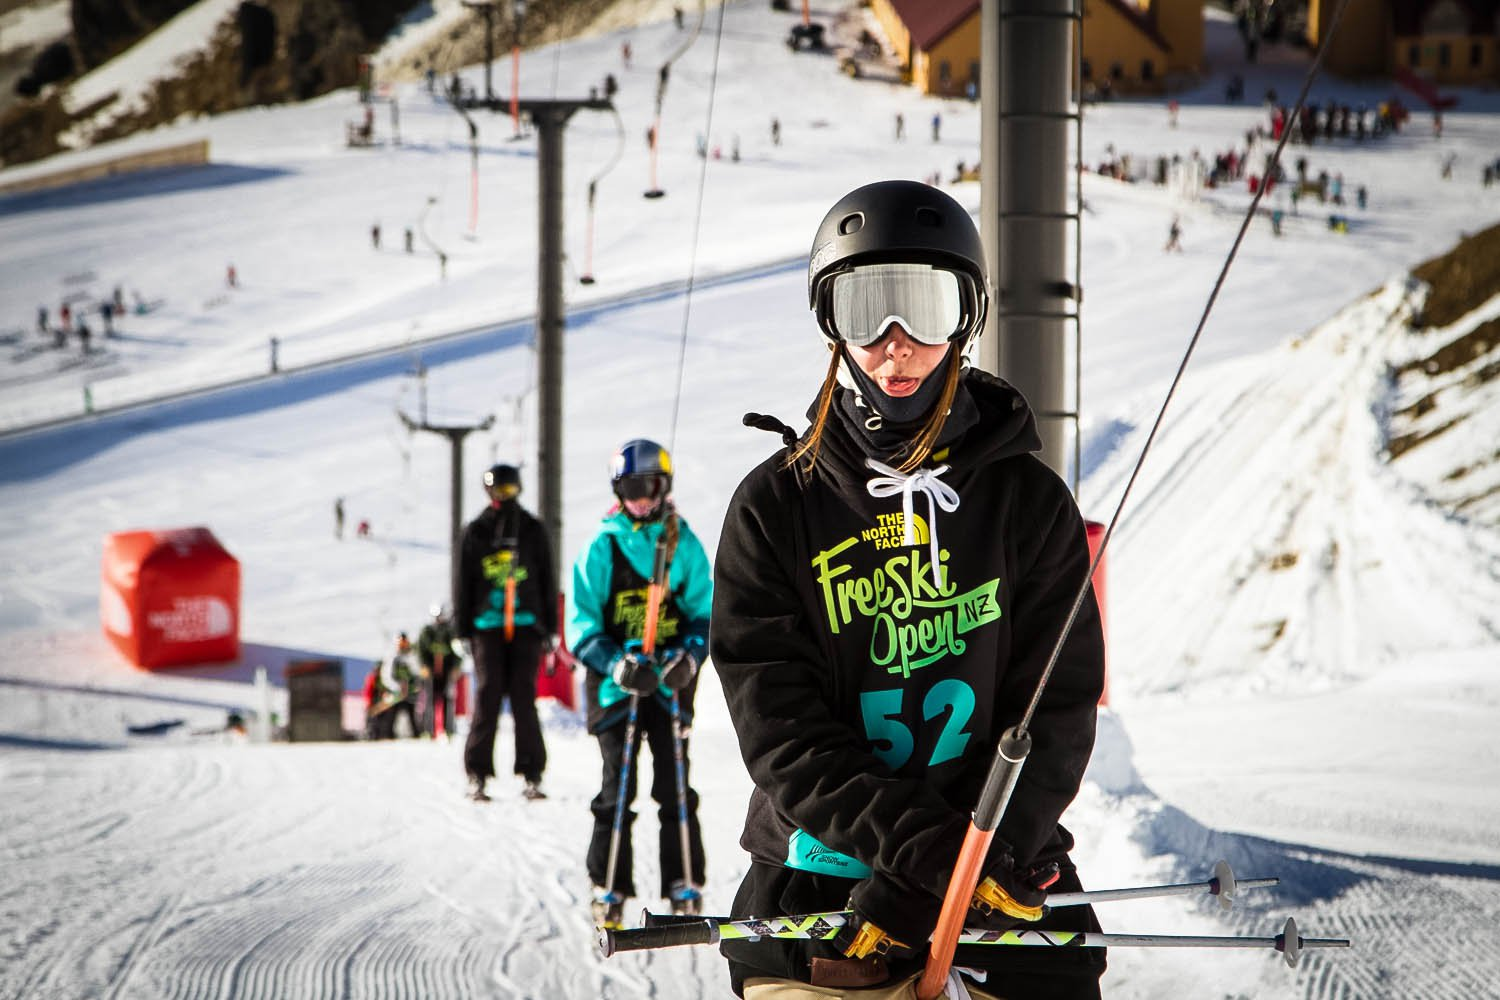 TNF Freeski Open